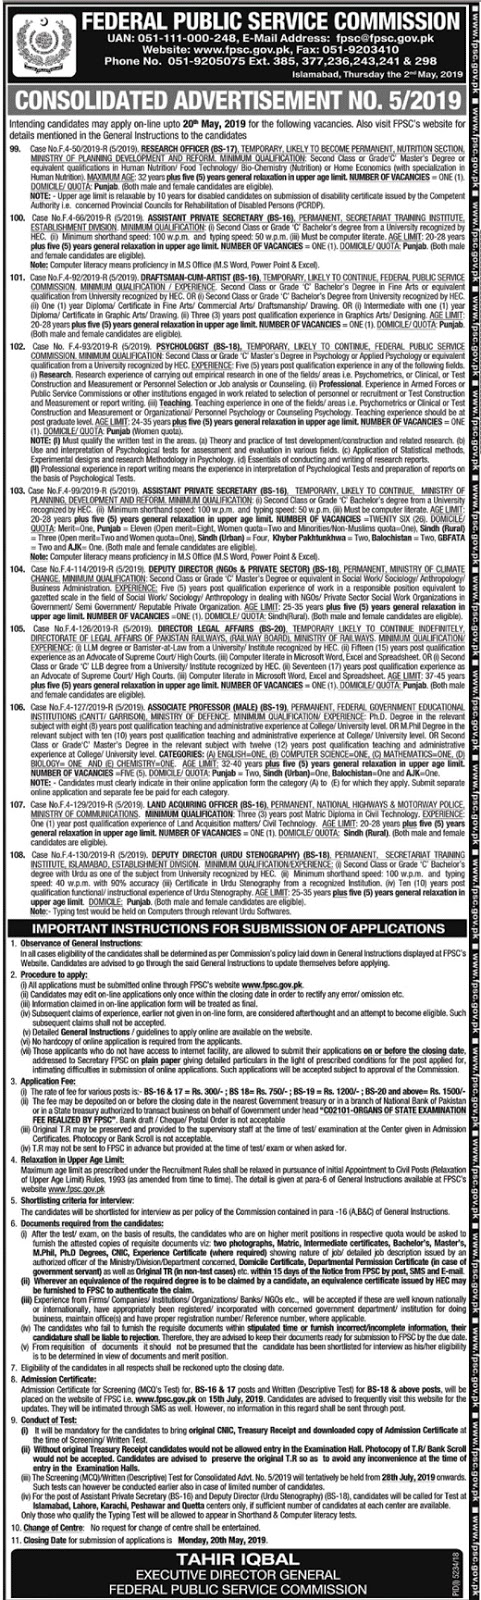 FPSC Jobs Advertisement No 05/2019 | Federal Public Service Commission